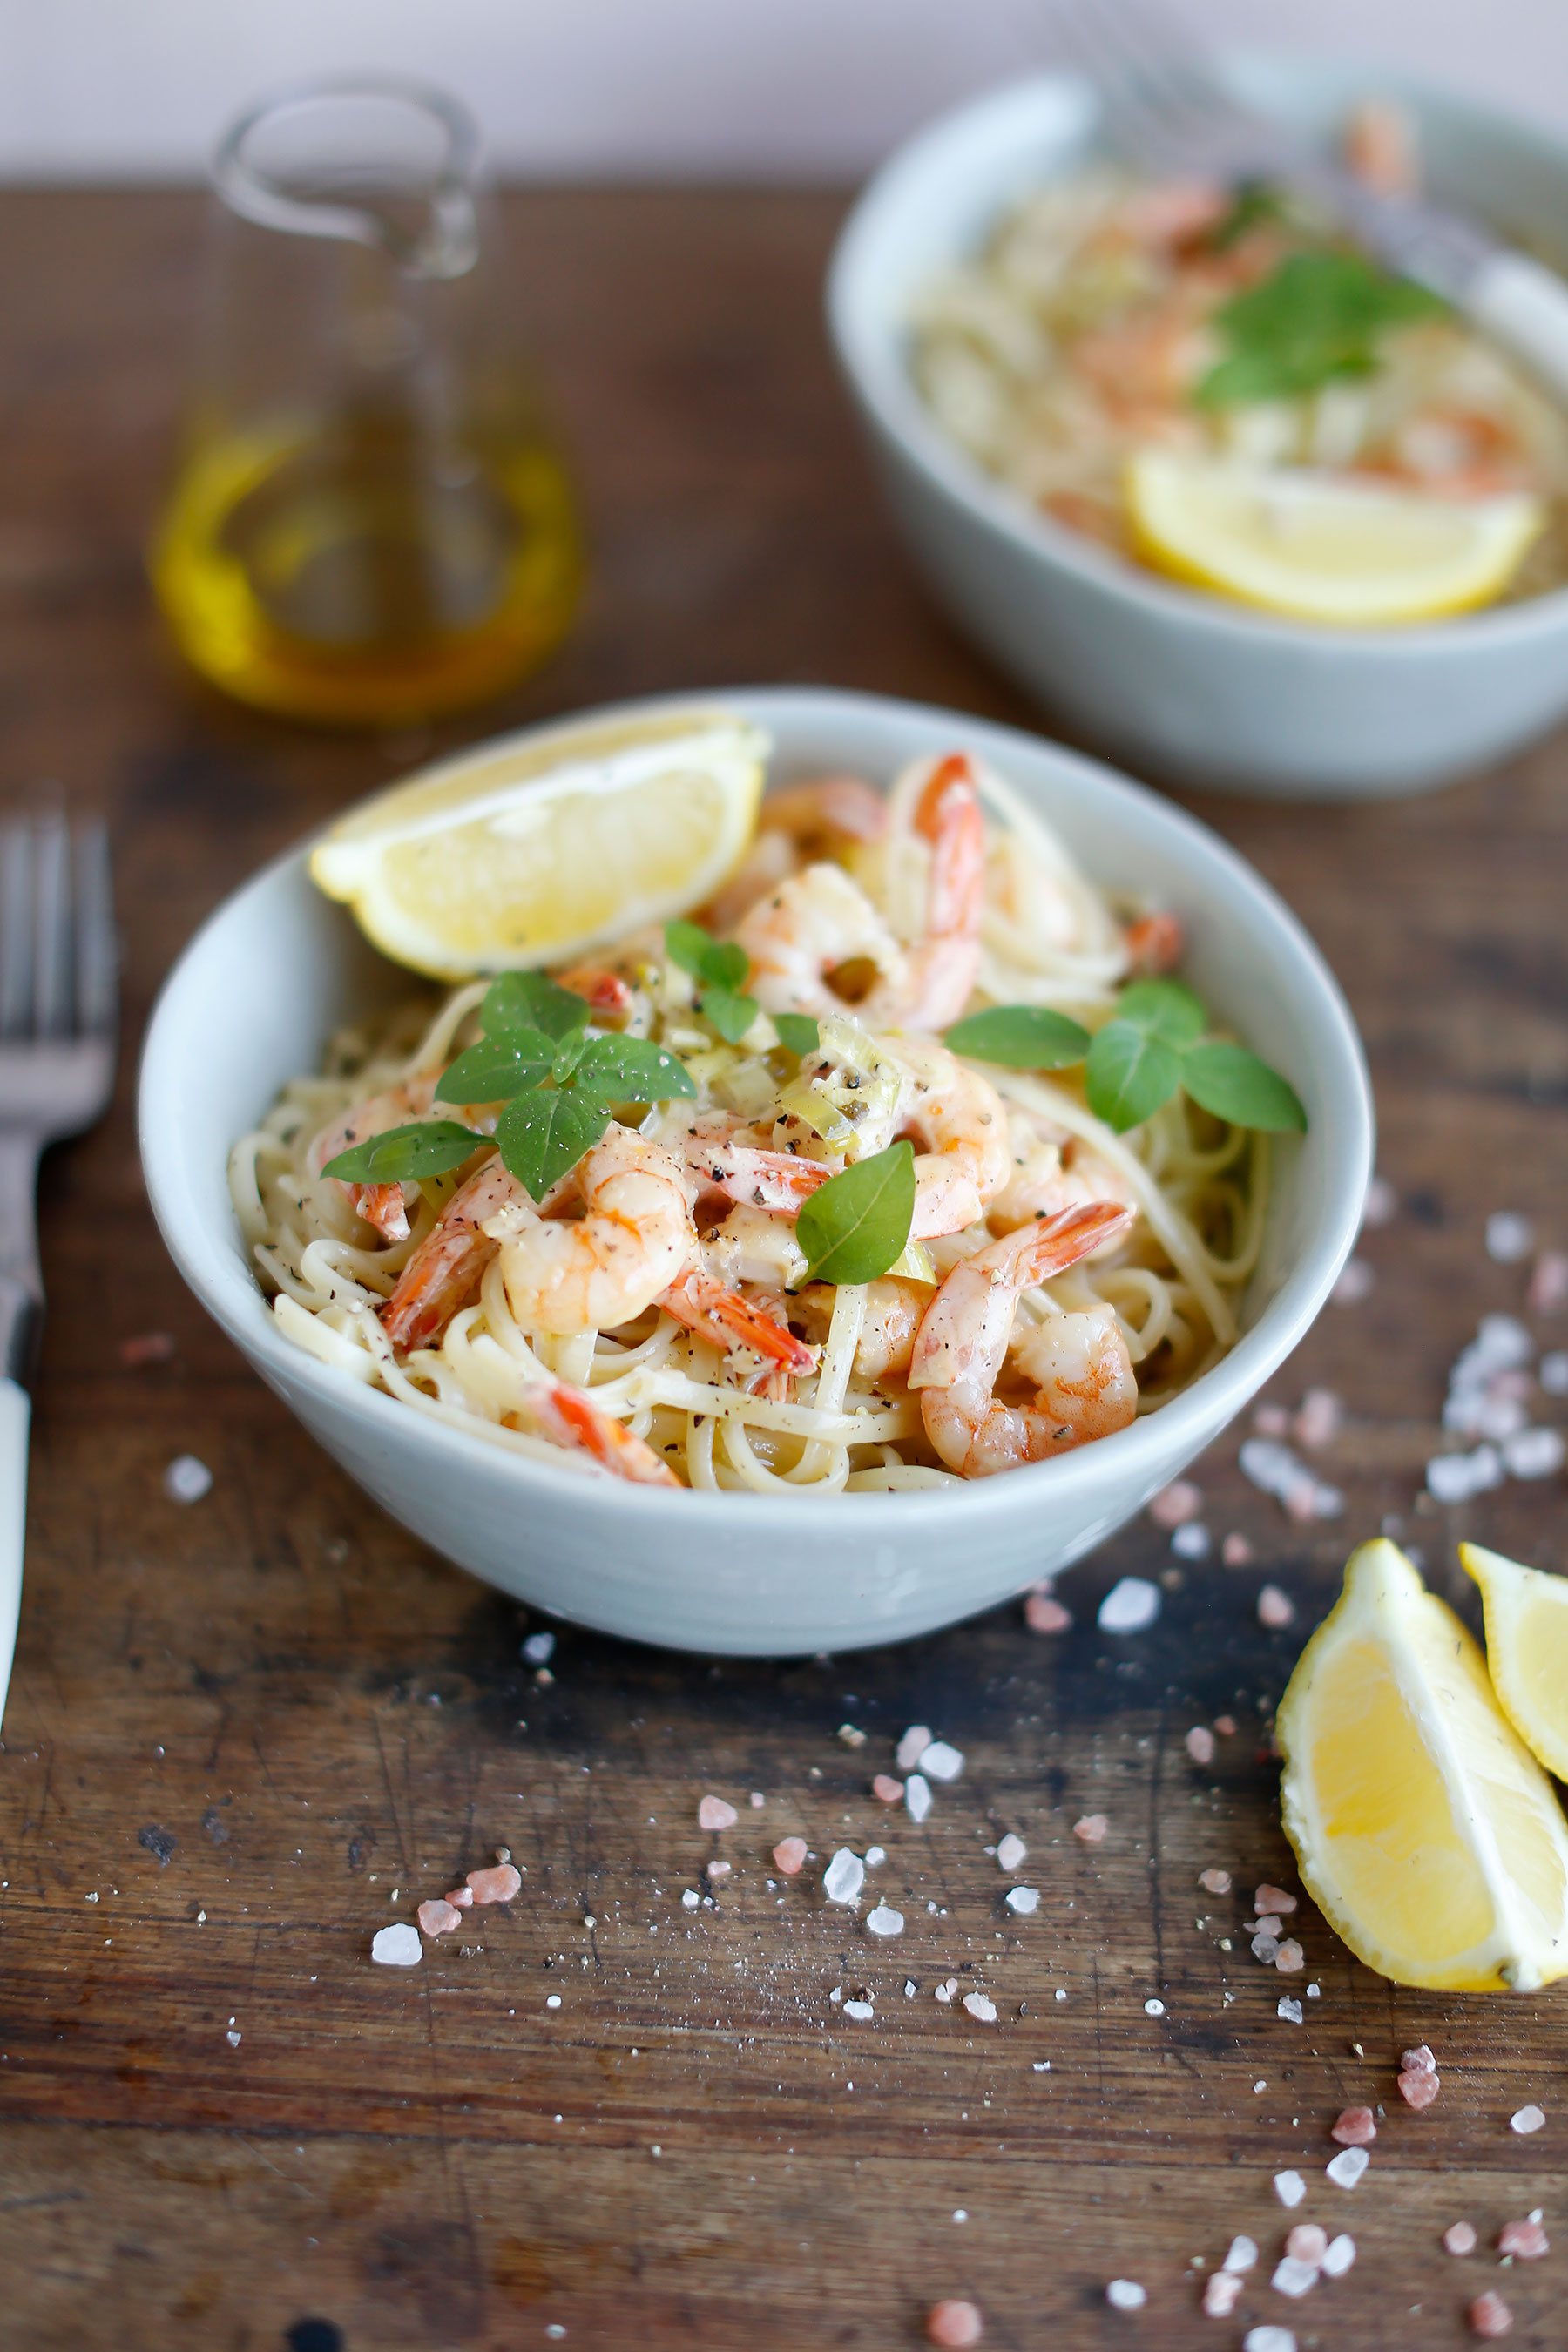 Lemon-Cream,-Prawn-and-Leek-Pasta-7